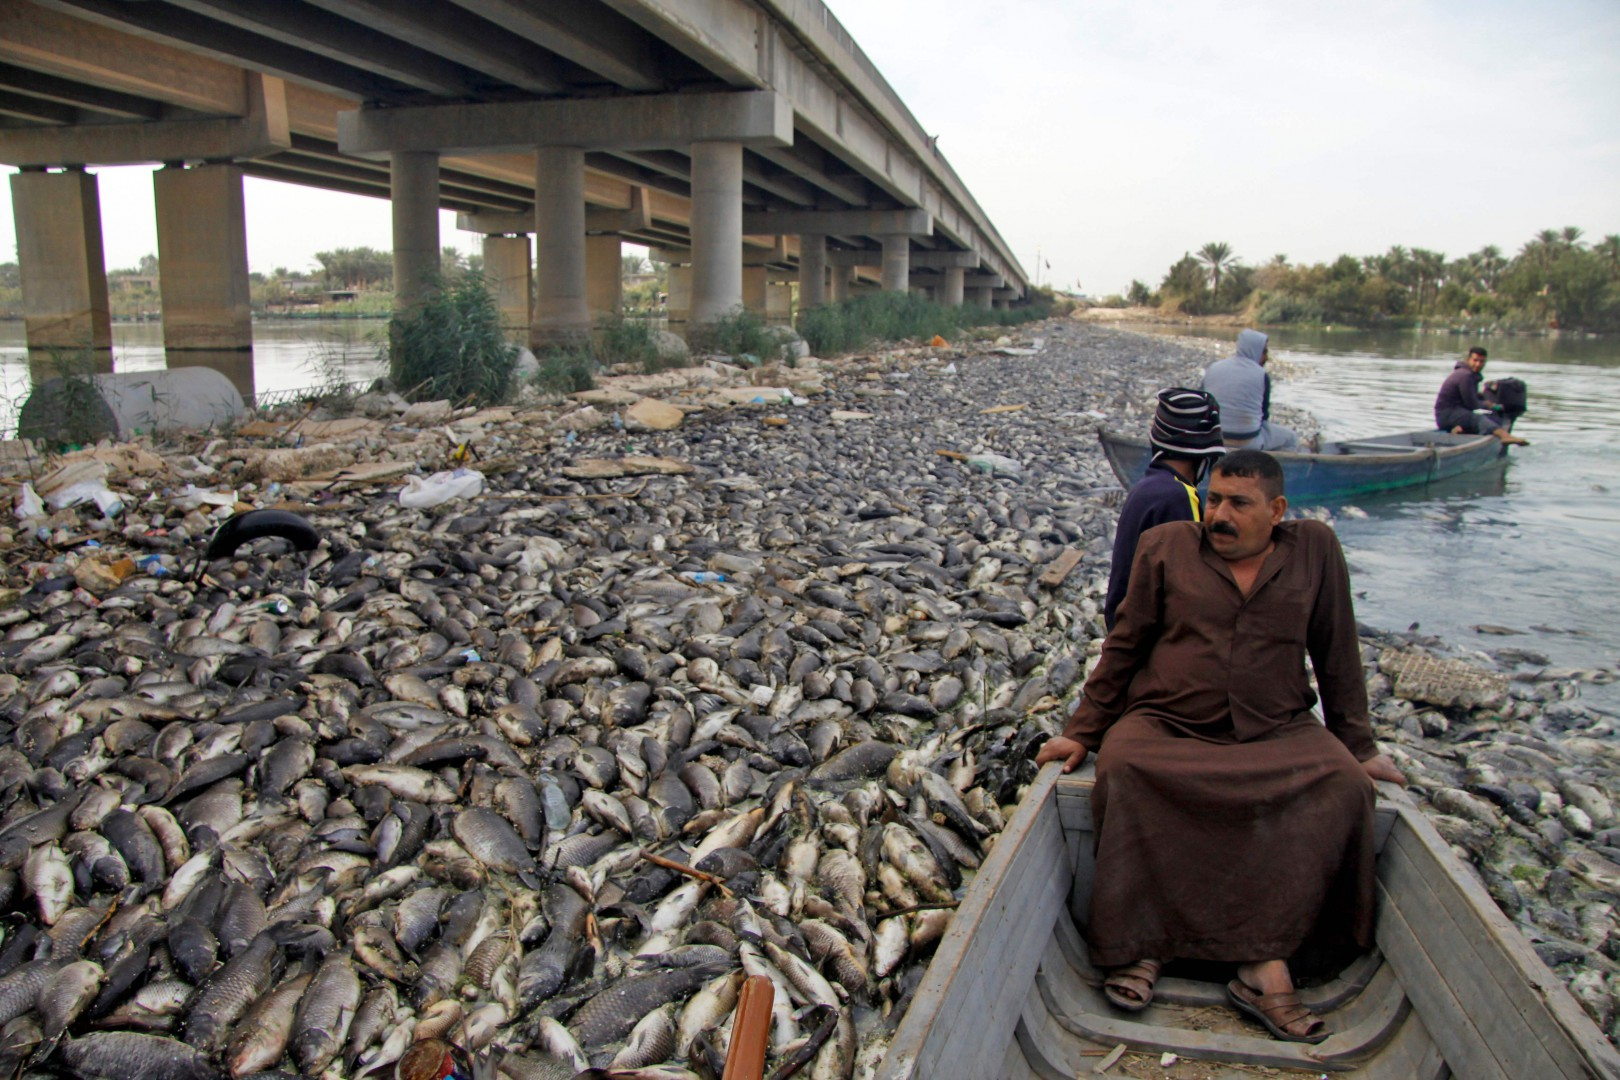 Iraqi men sail past scores of dead fish, from nearby farms, floating on the Euphrates river near the town of Sadat al Hindiya, north of the central Iraqi city of Hilla, on November 2, 2018. - Iraqi fishermen, south of Baghdad were stunned and angry after finding thousands of dead carp mysteriously floating in their water farms or washed up on the Euphrates' river bed. (Photo by Haidar HAMDANI / AFP)